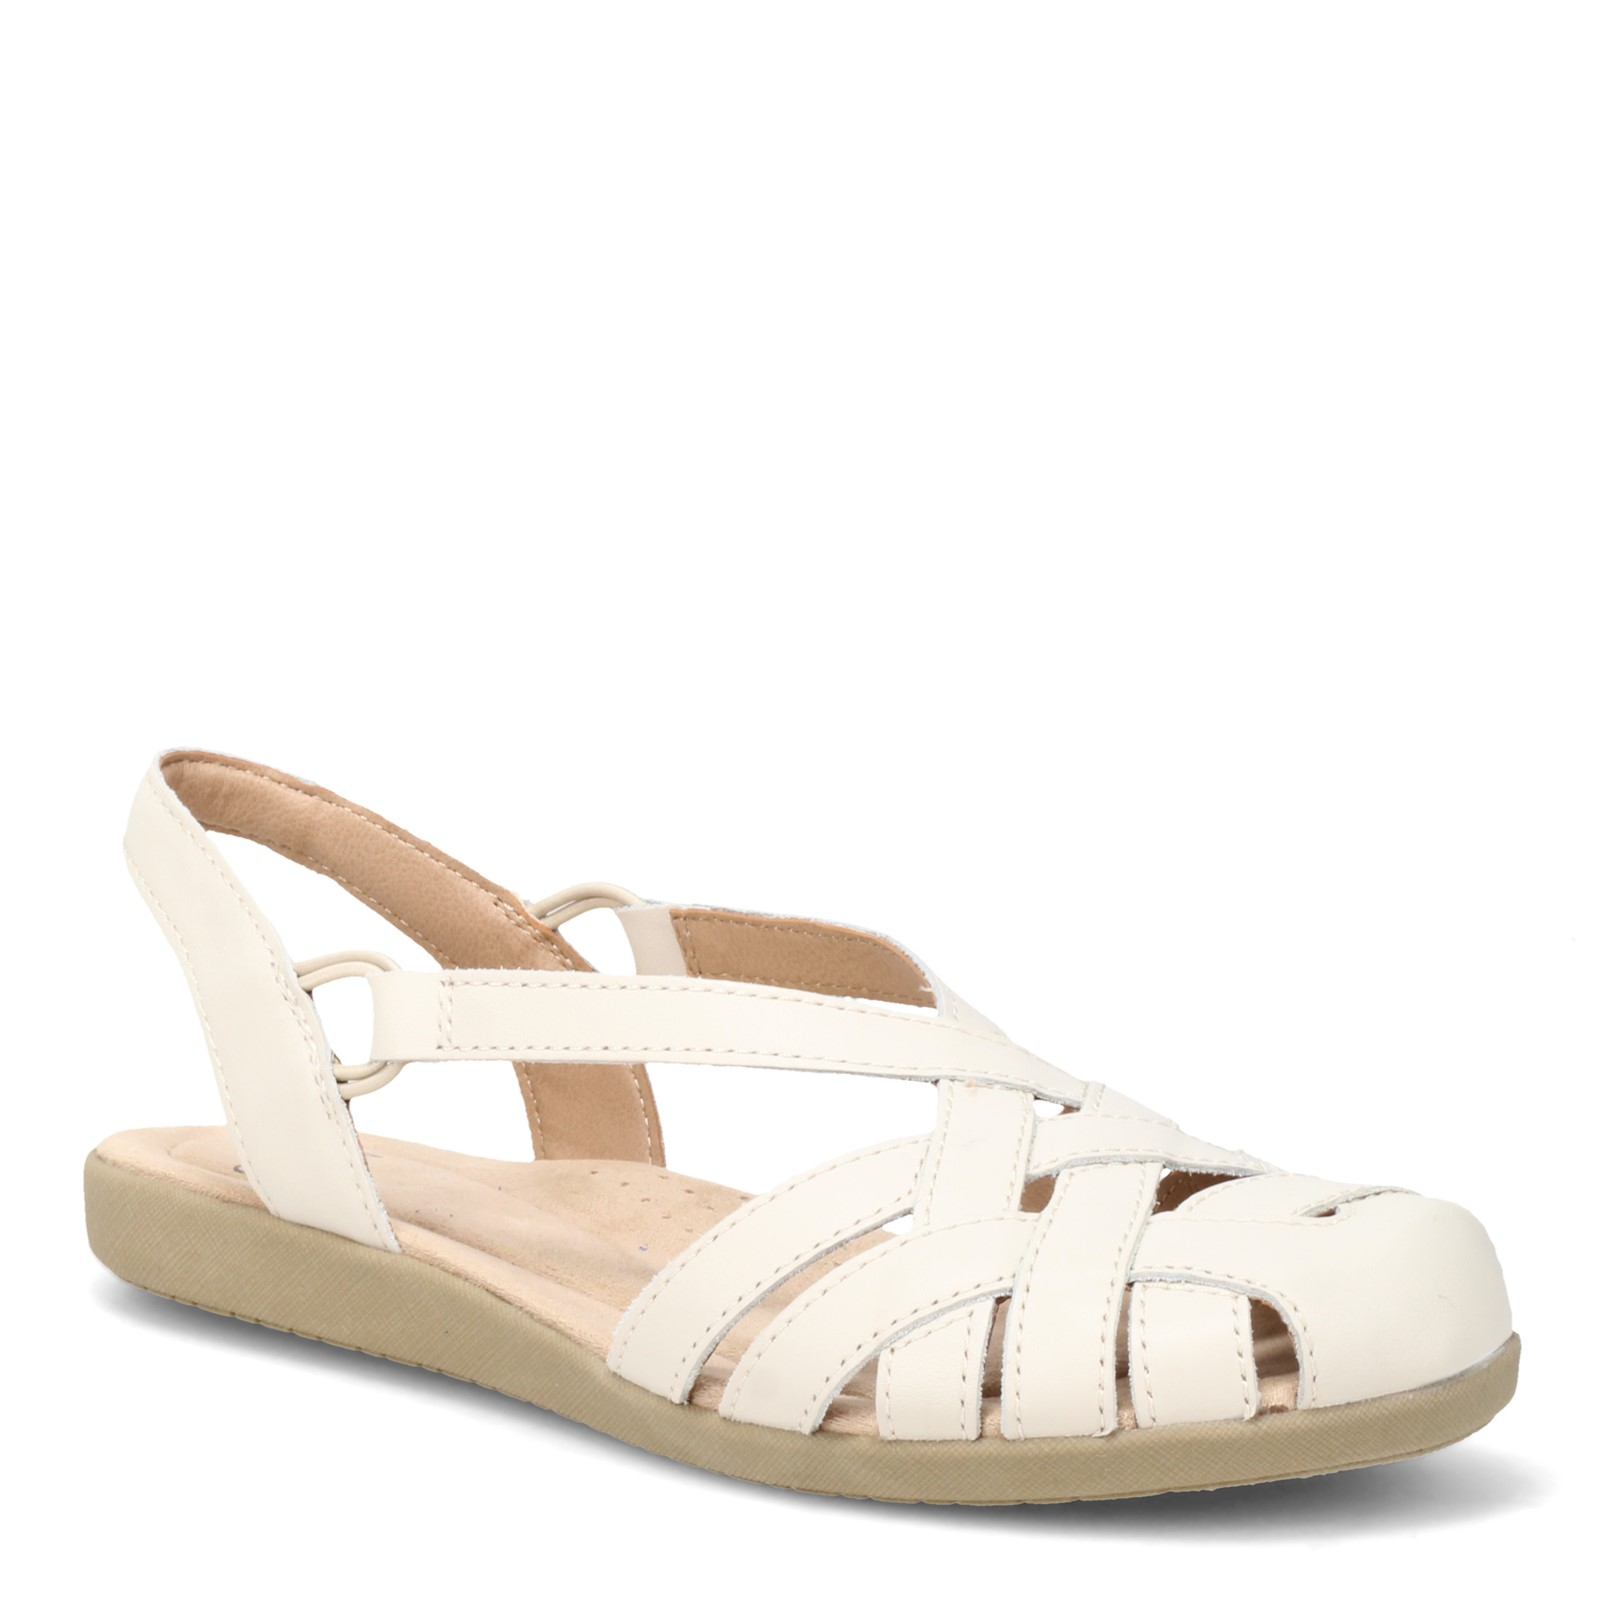 Women's Earth Origins, Nellie Low Heel Sandal